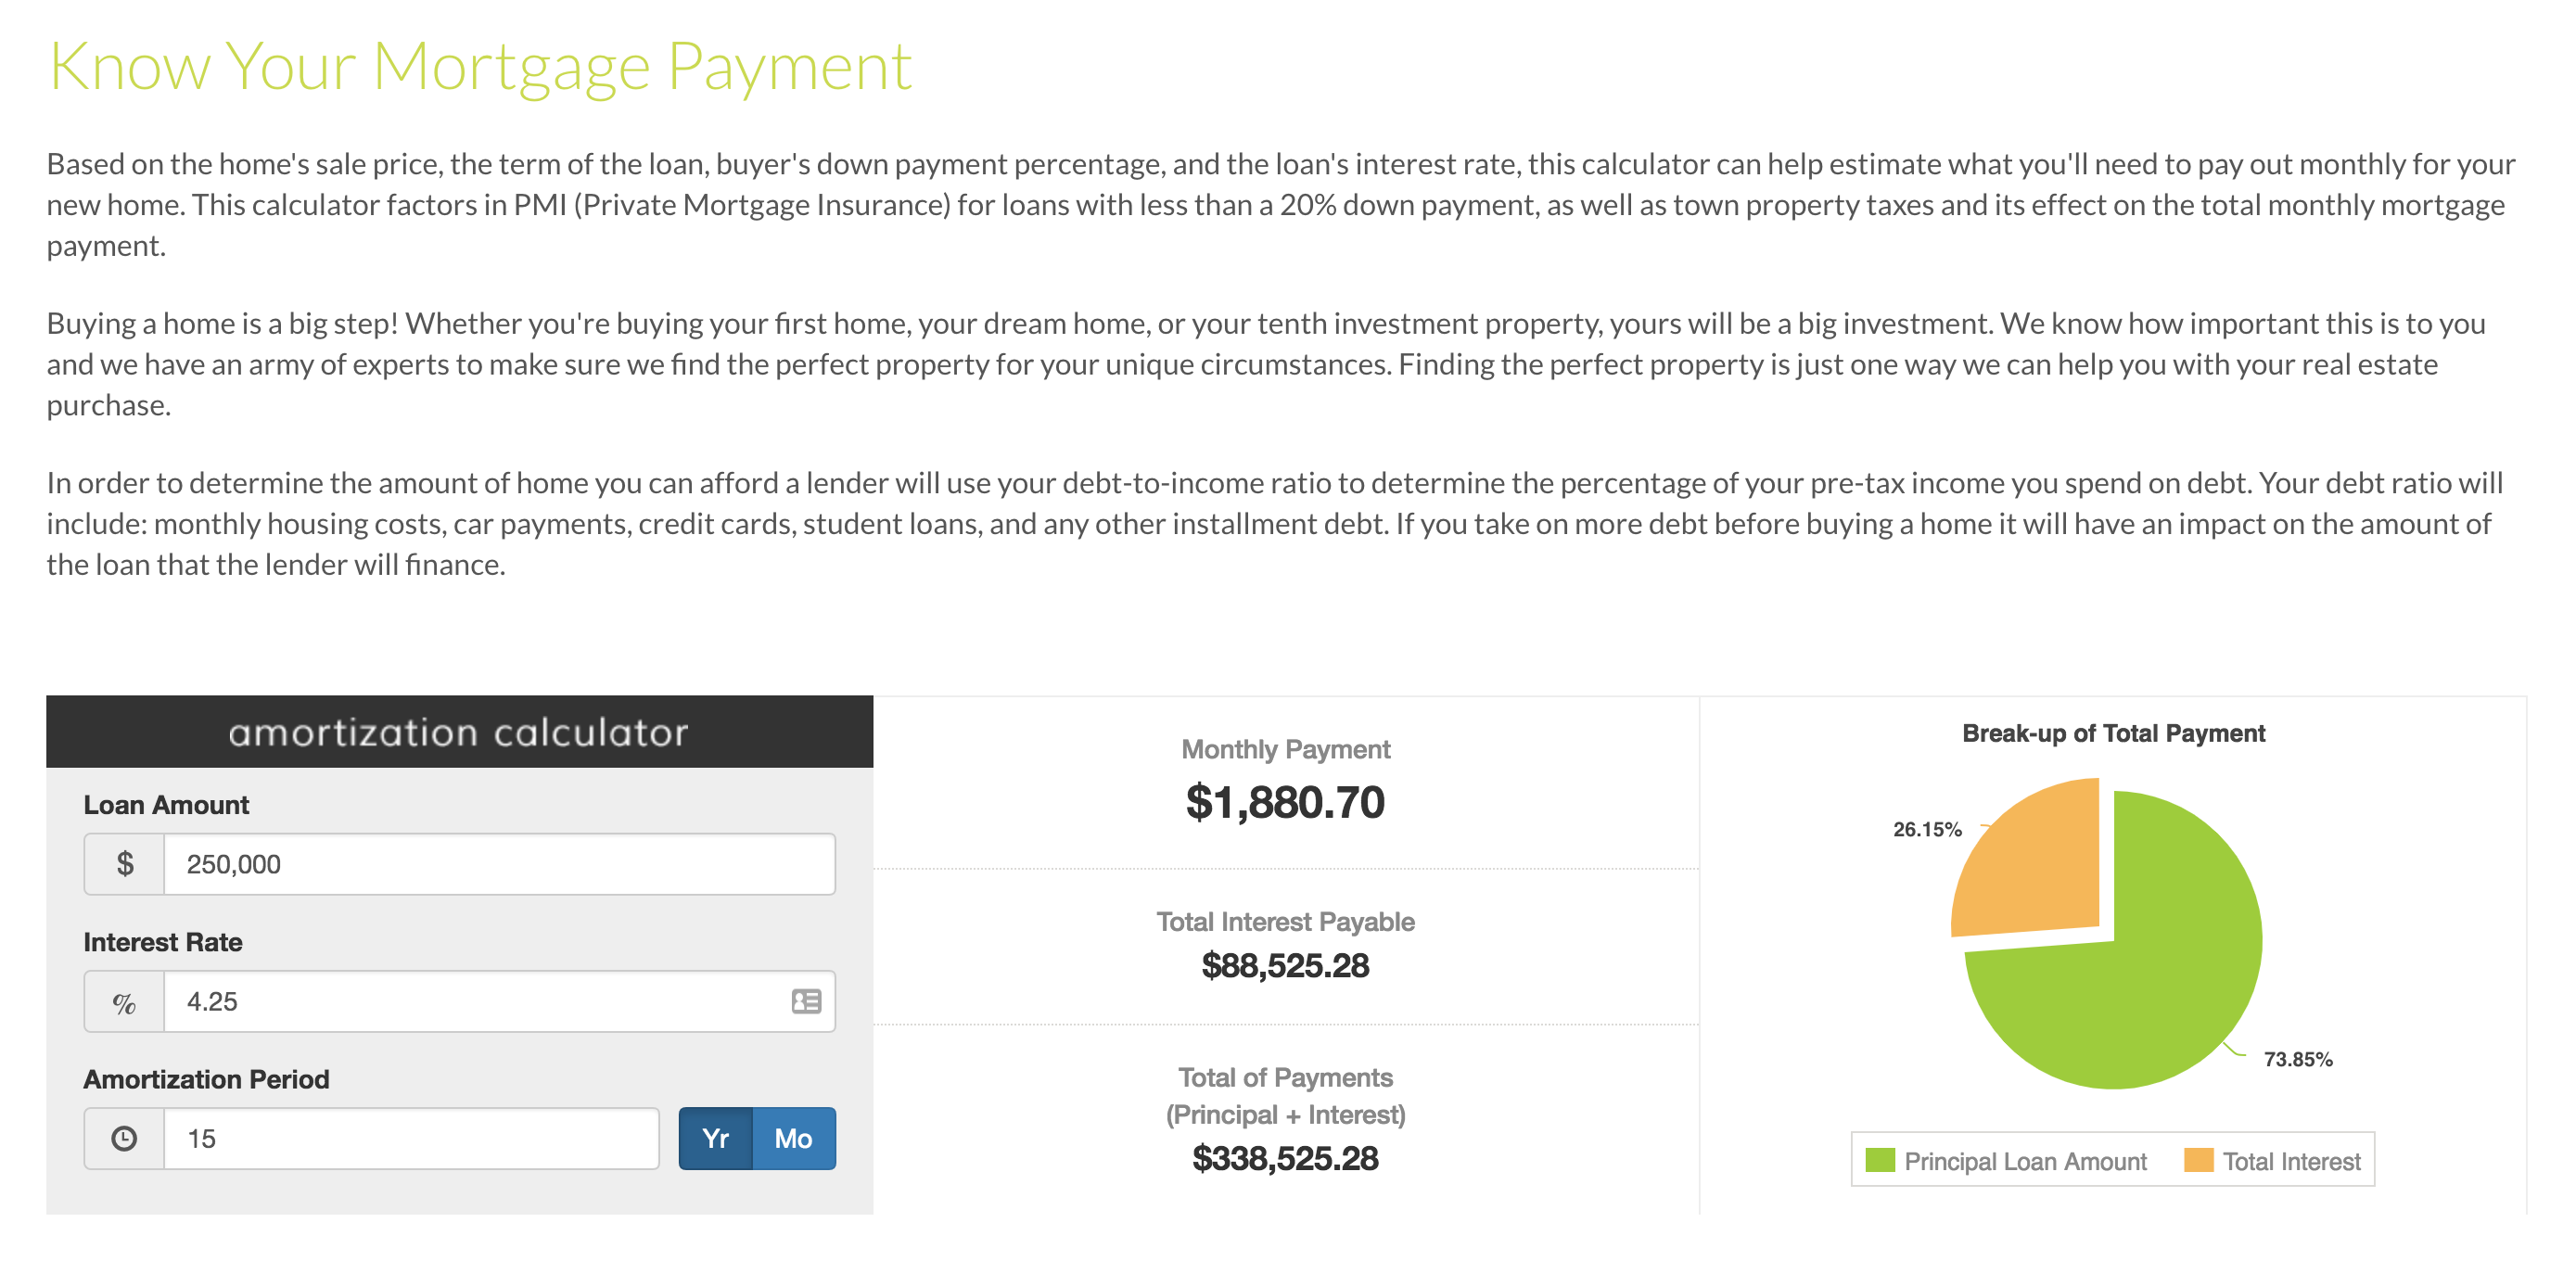 Home Mortgage Loan Calculator With Pmi - Home Sweet Home